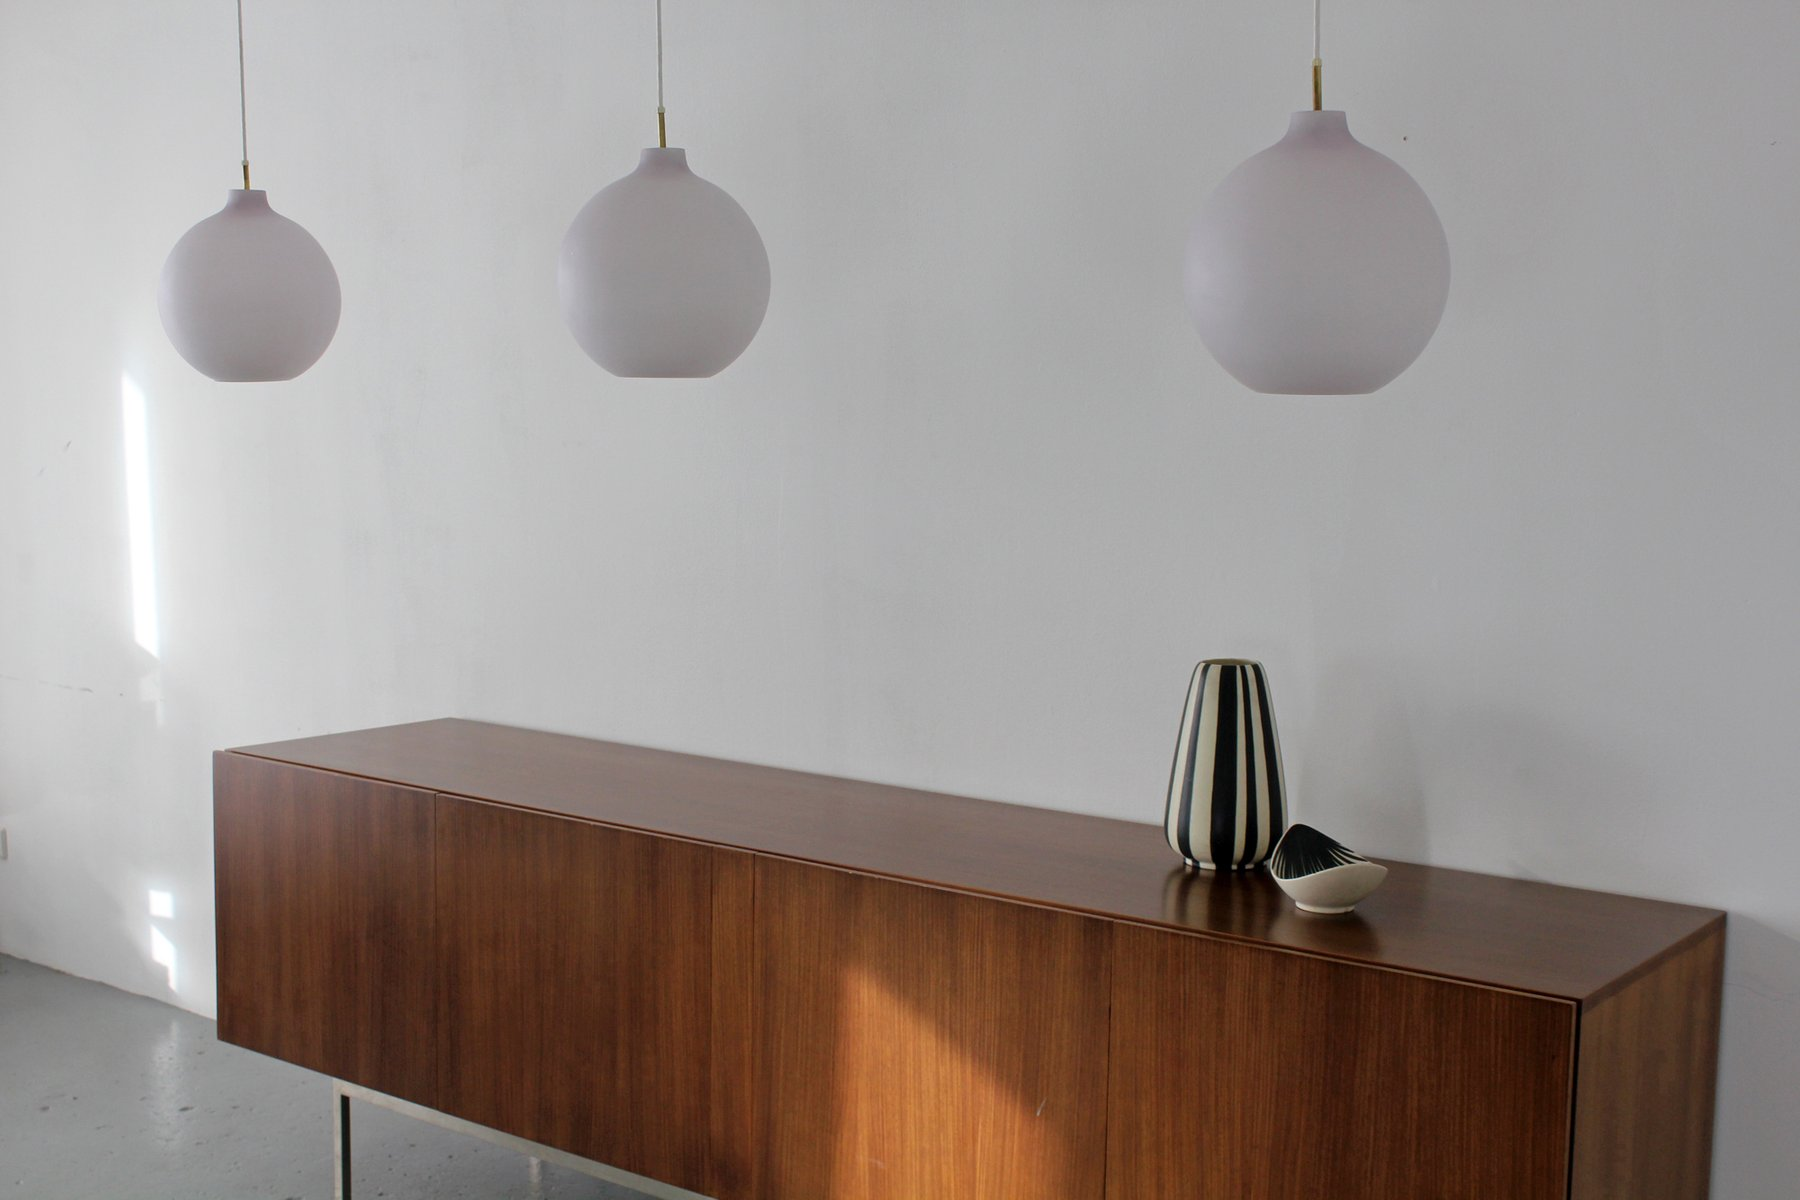 danish modern pendant lamp by vilhelm wohlert for louis poulsen  - danish modern pendant lamp by vilhelm wohlert for louis poulsen